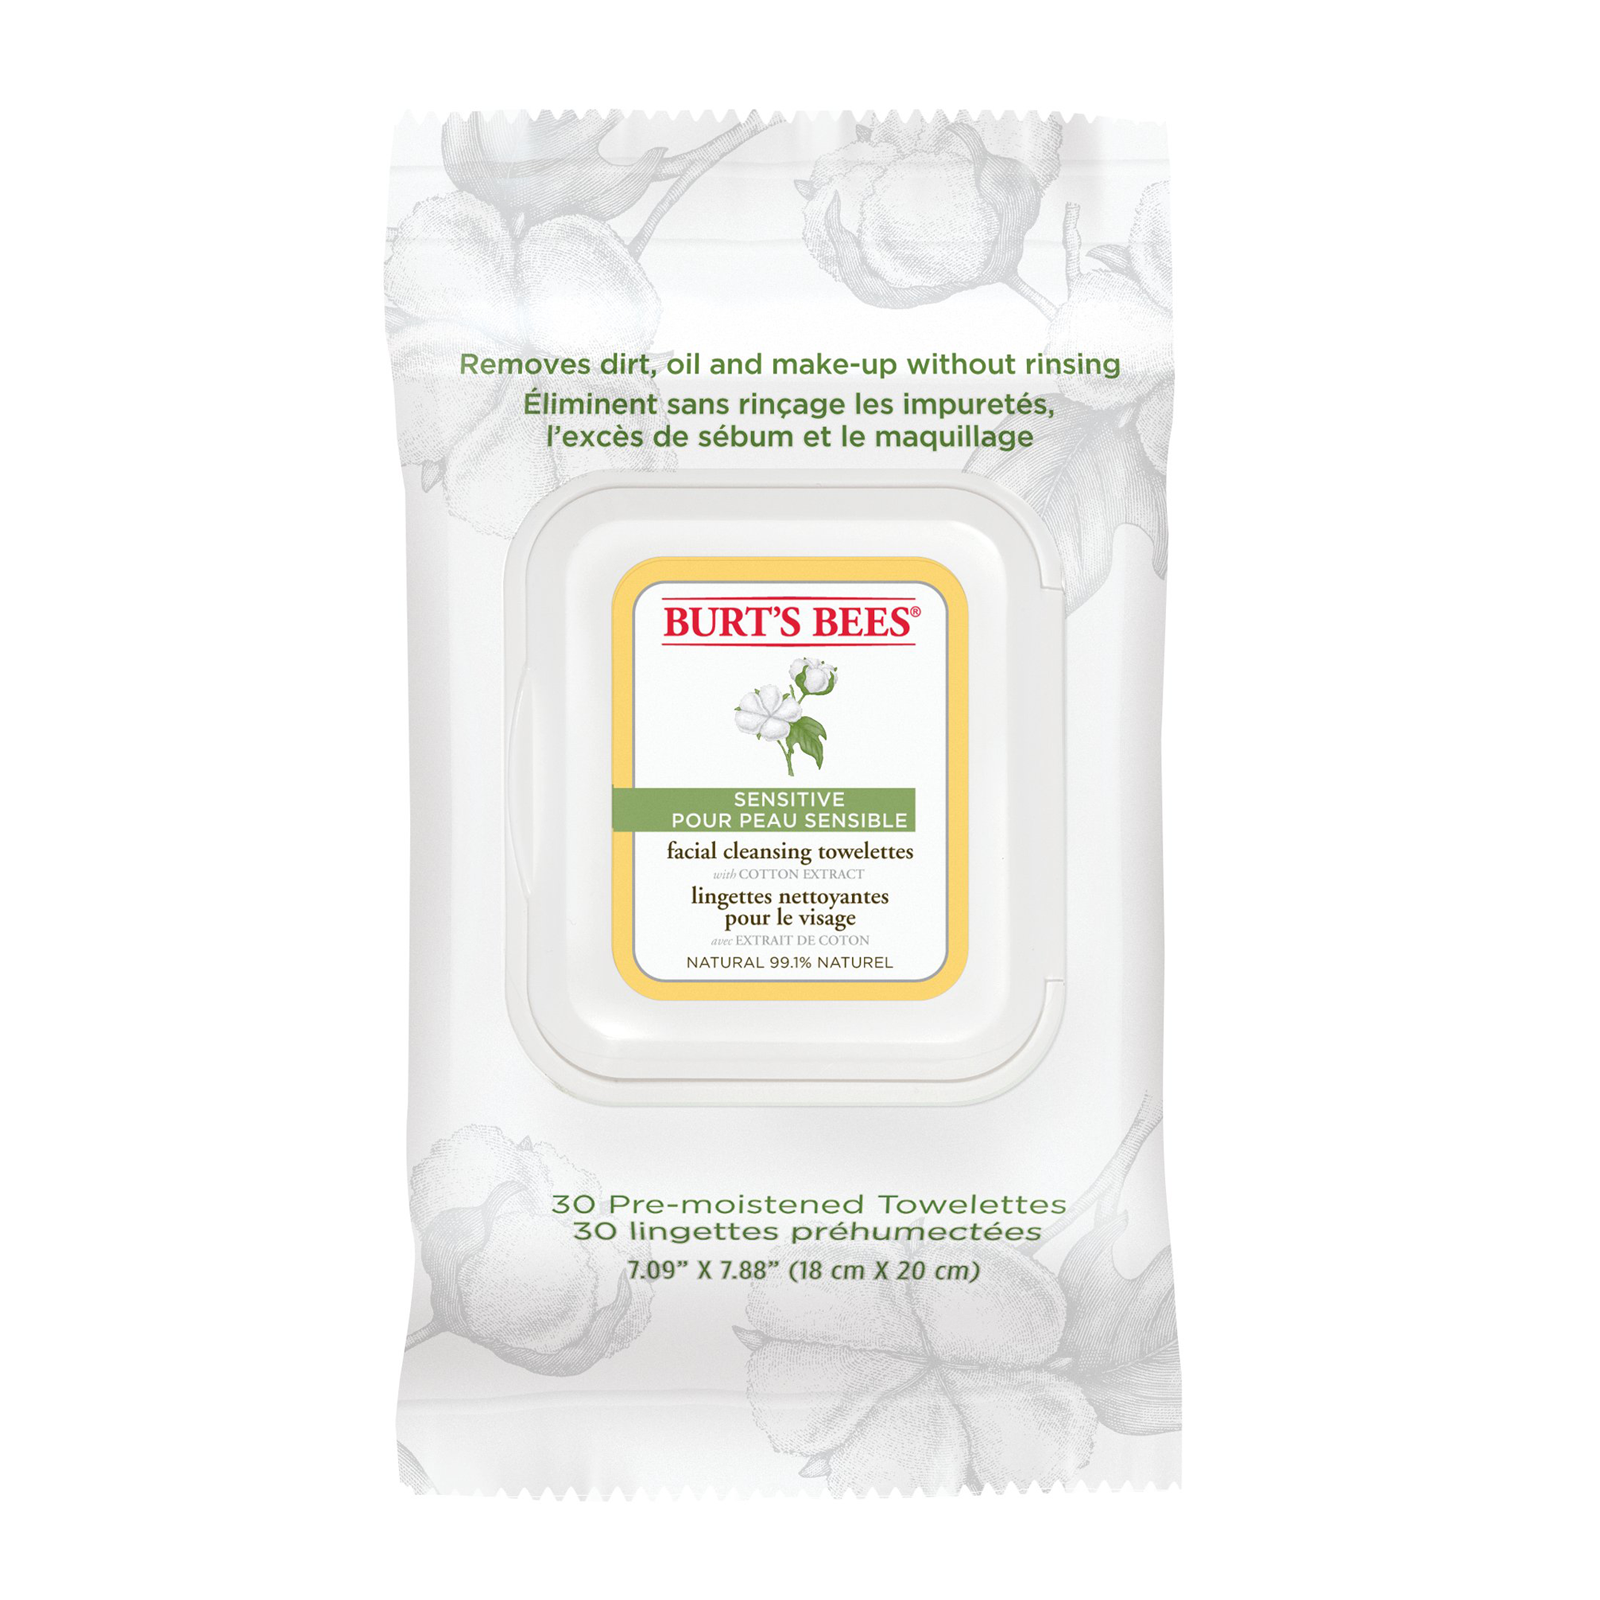 Burt's Bees Cleansing Towelettes $6